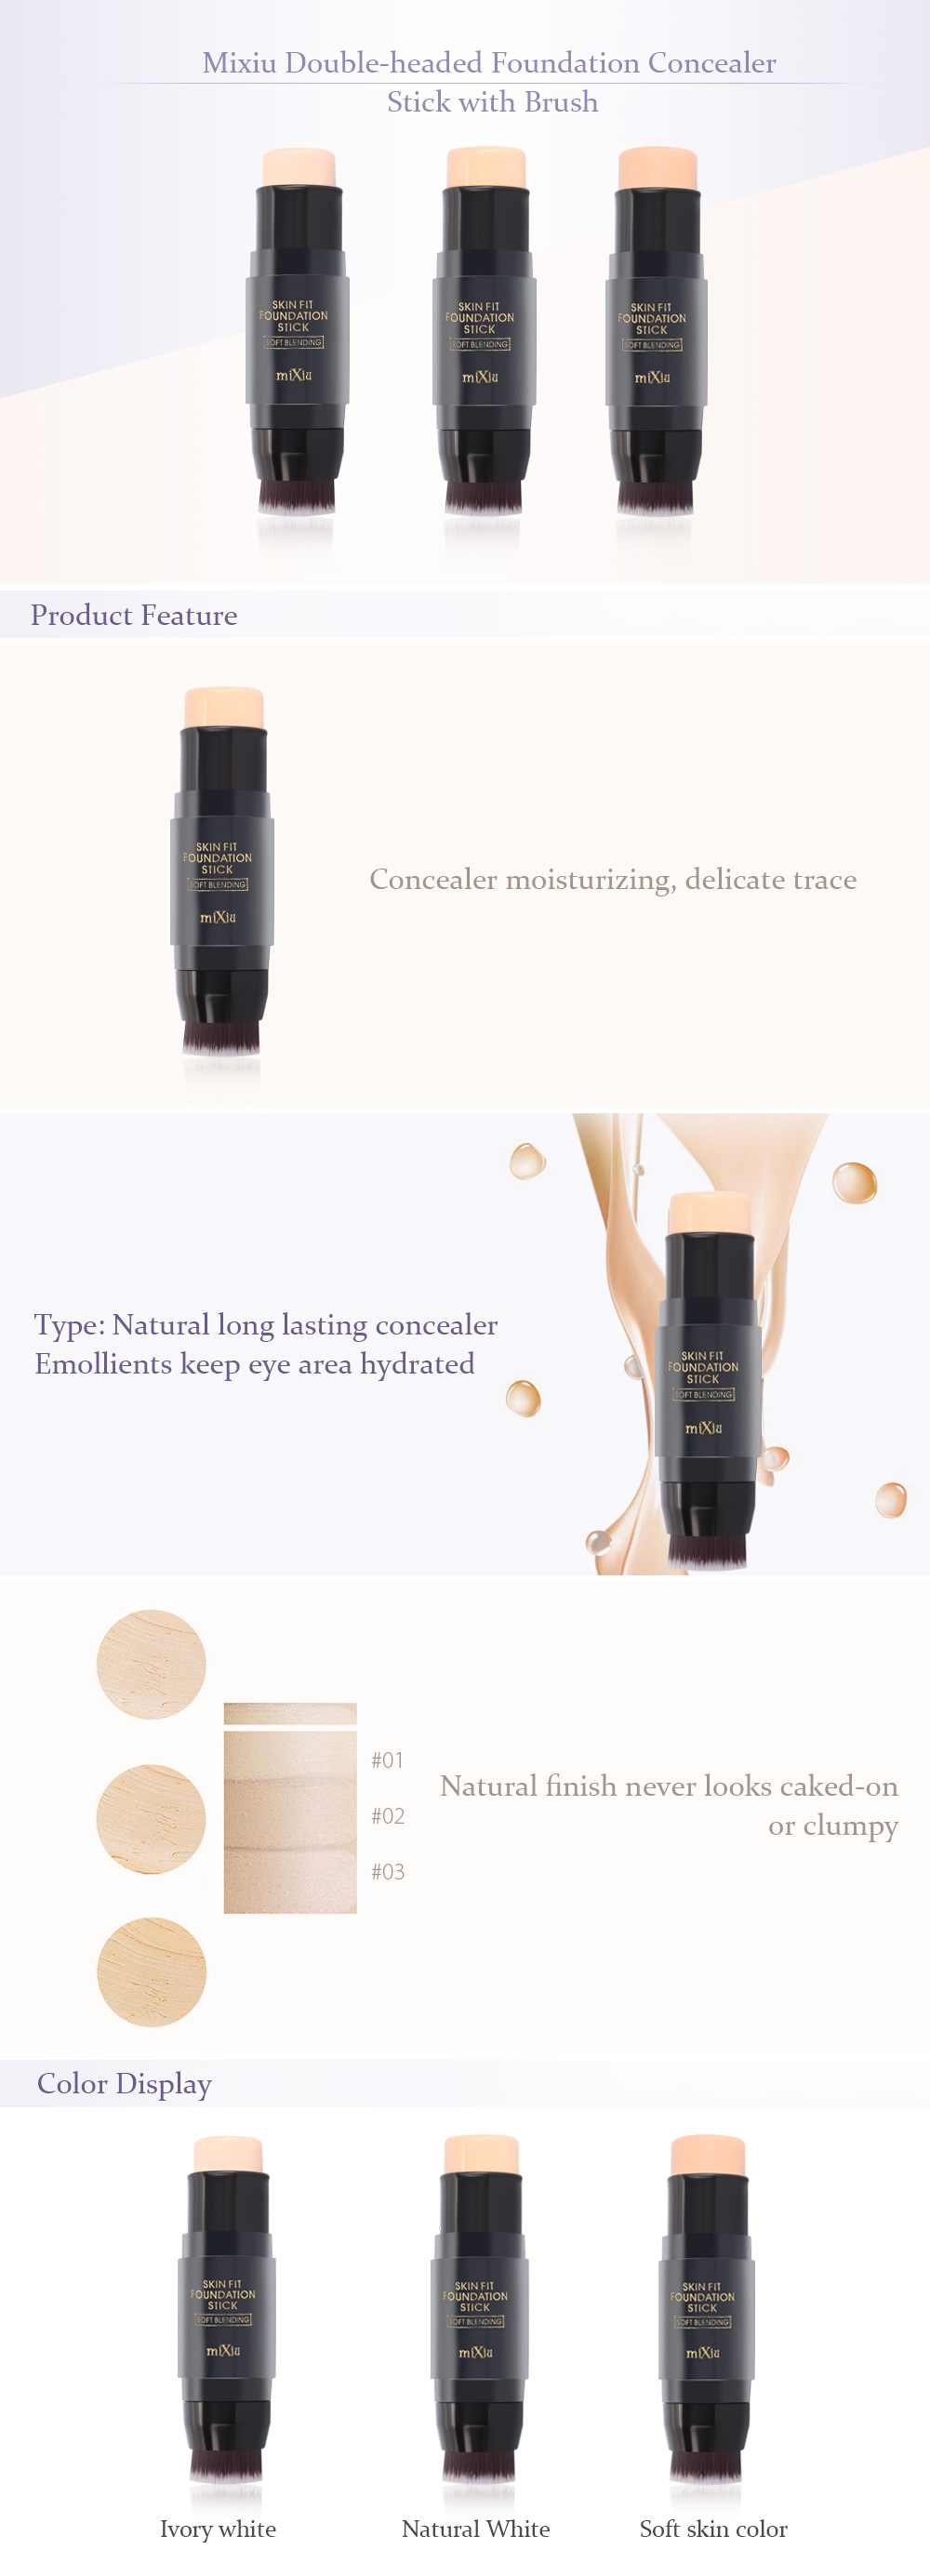 Mixiu Double-headed Covered Freckles Black Circles Foundation Stick with Brush